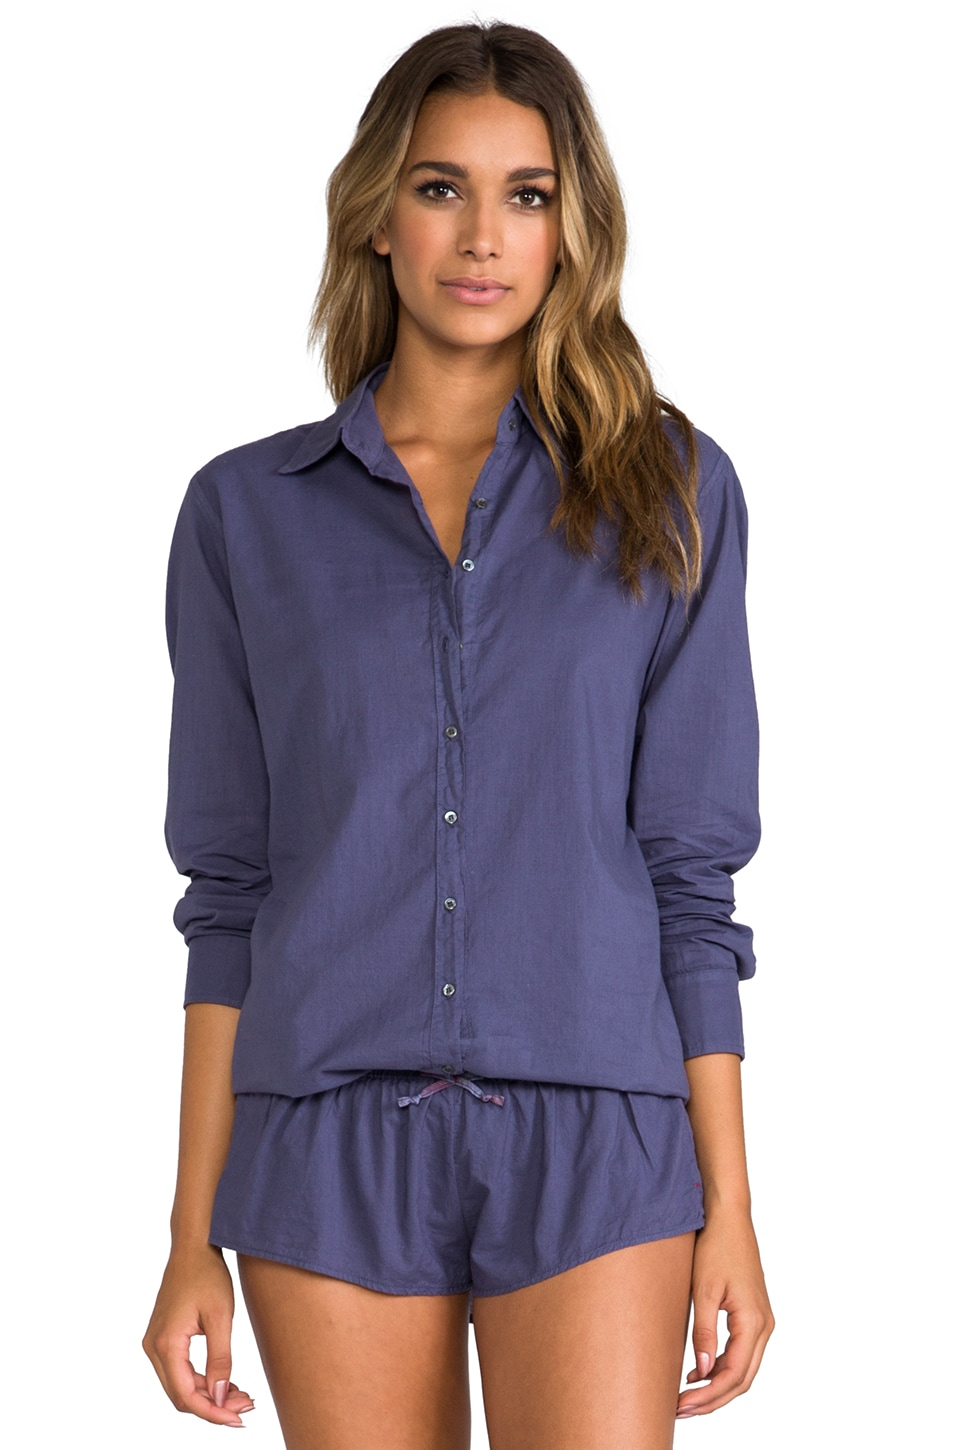 XiRENA Beau Button Up in Nuit